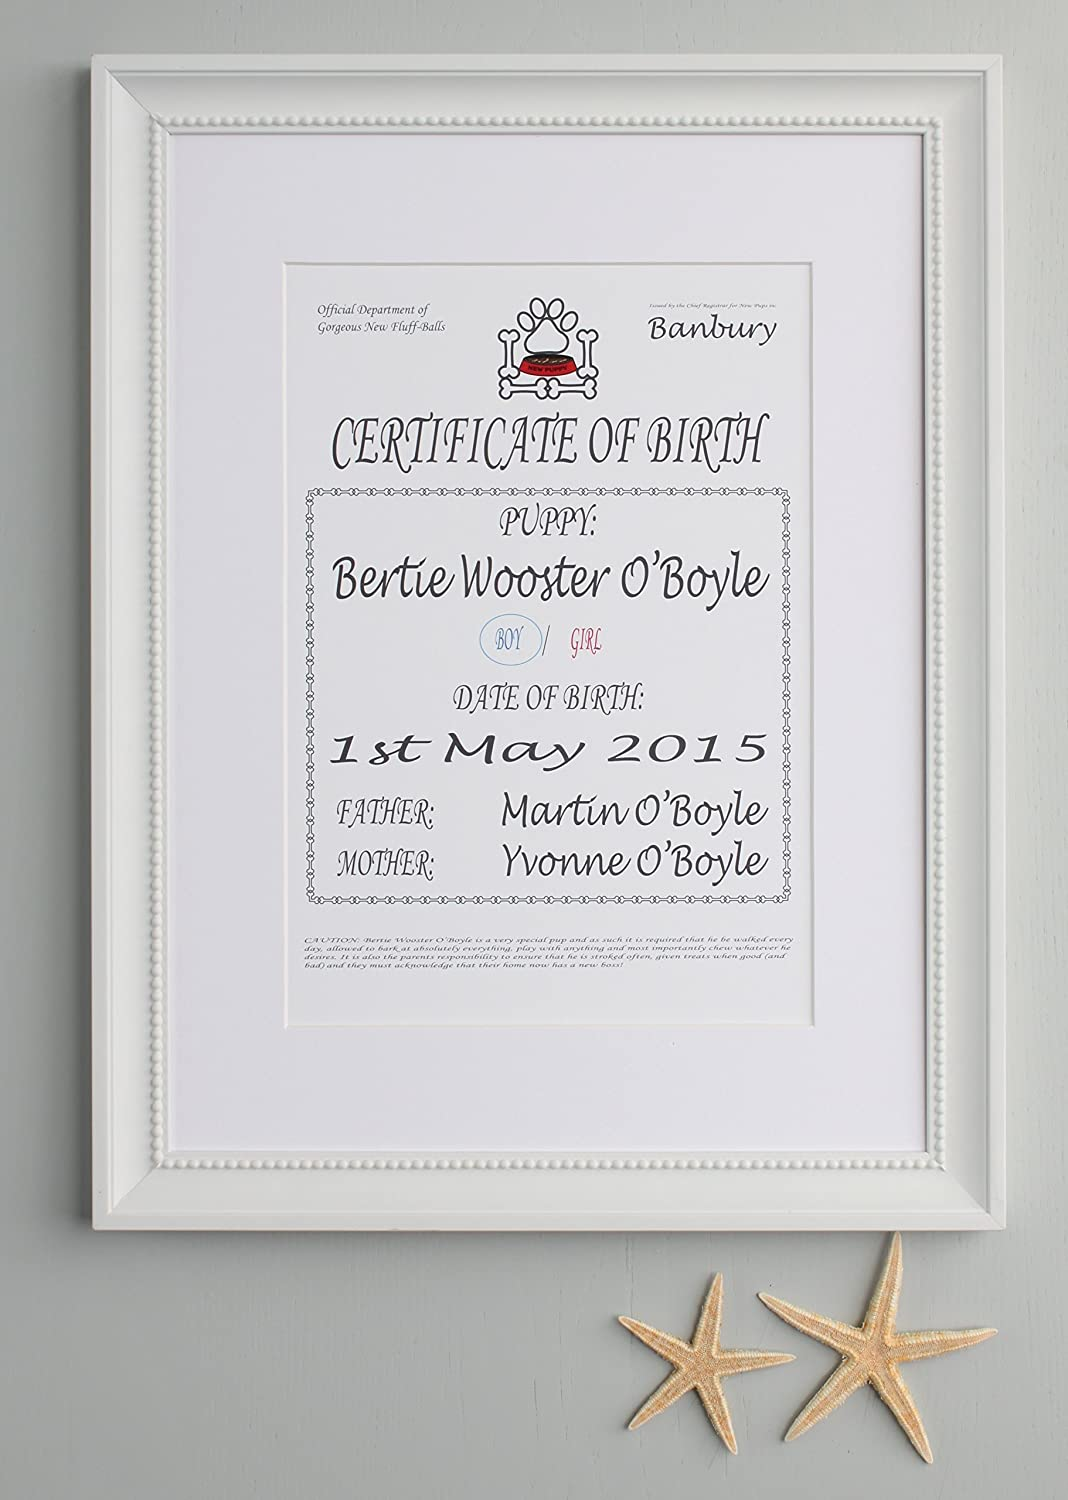 This is an image of Printable Birth Certificates intended for boy